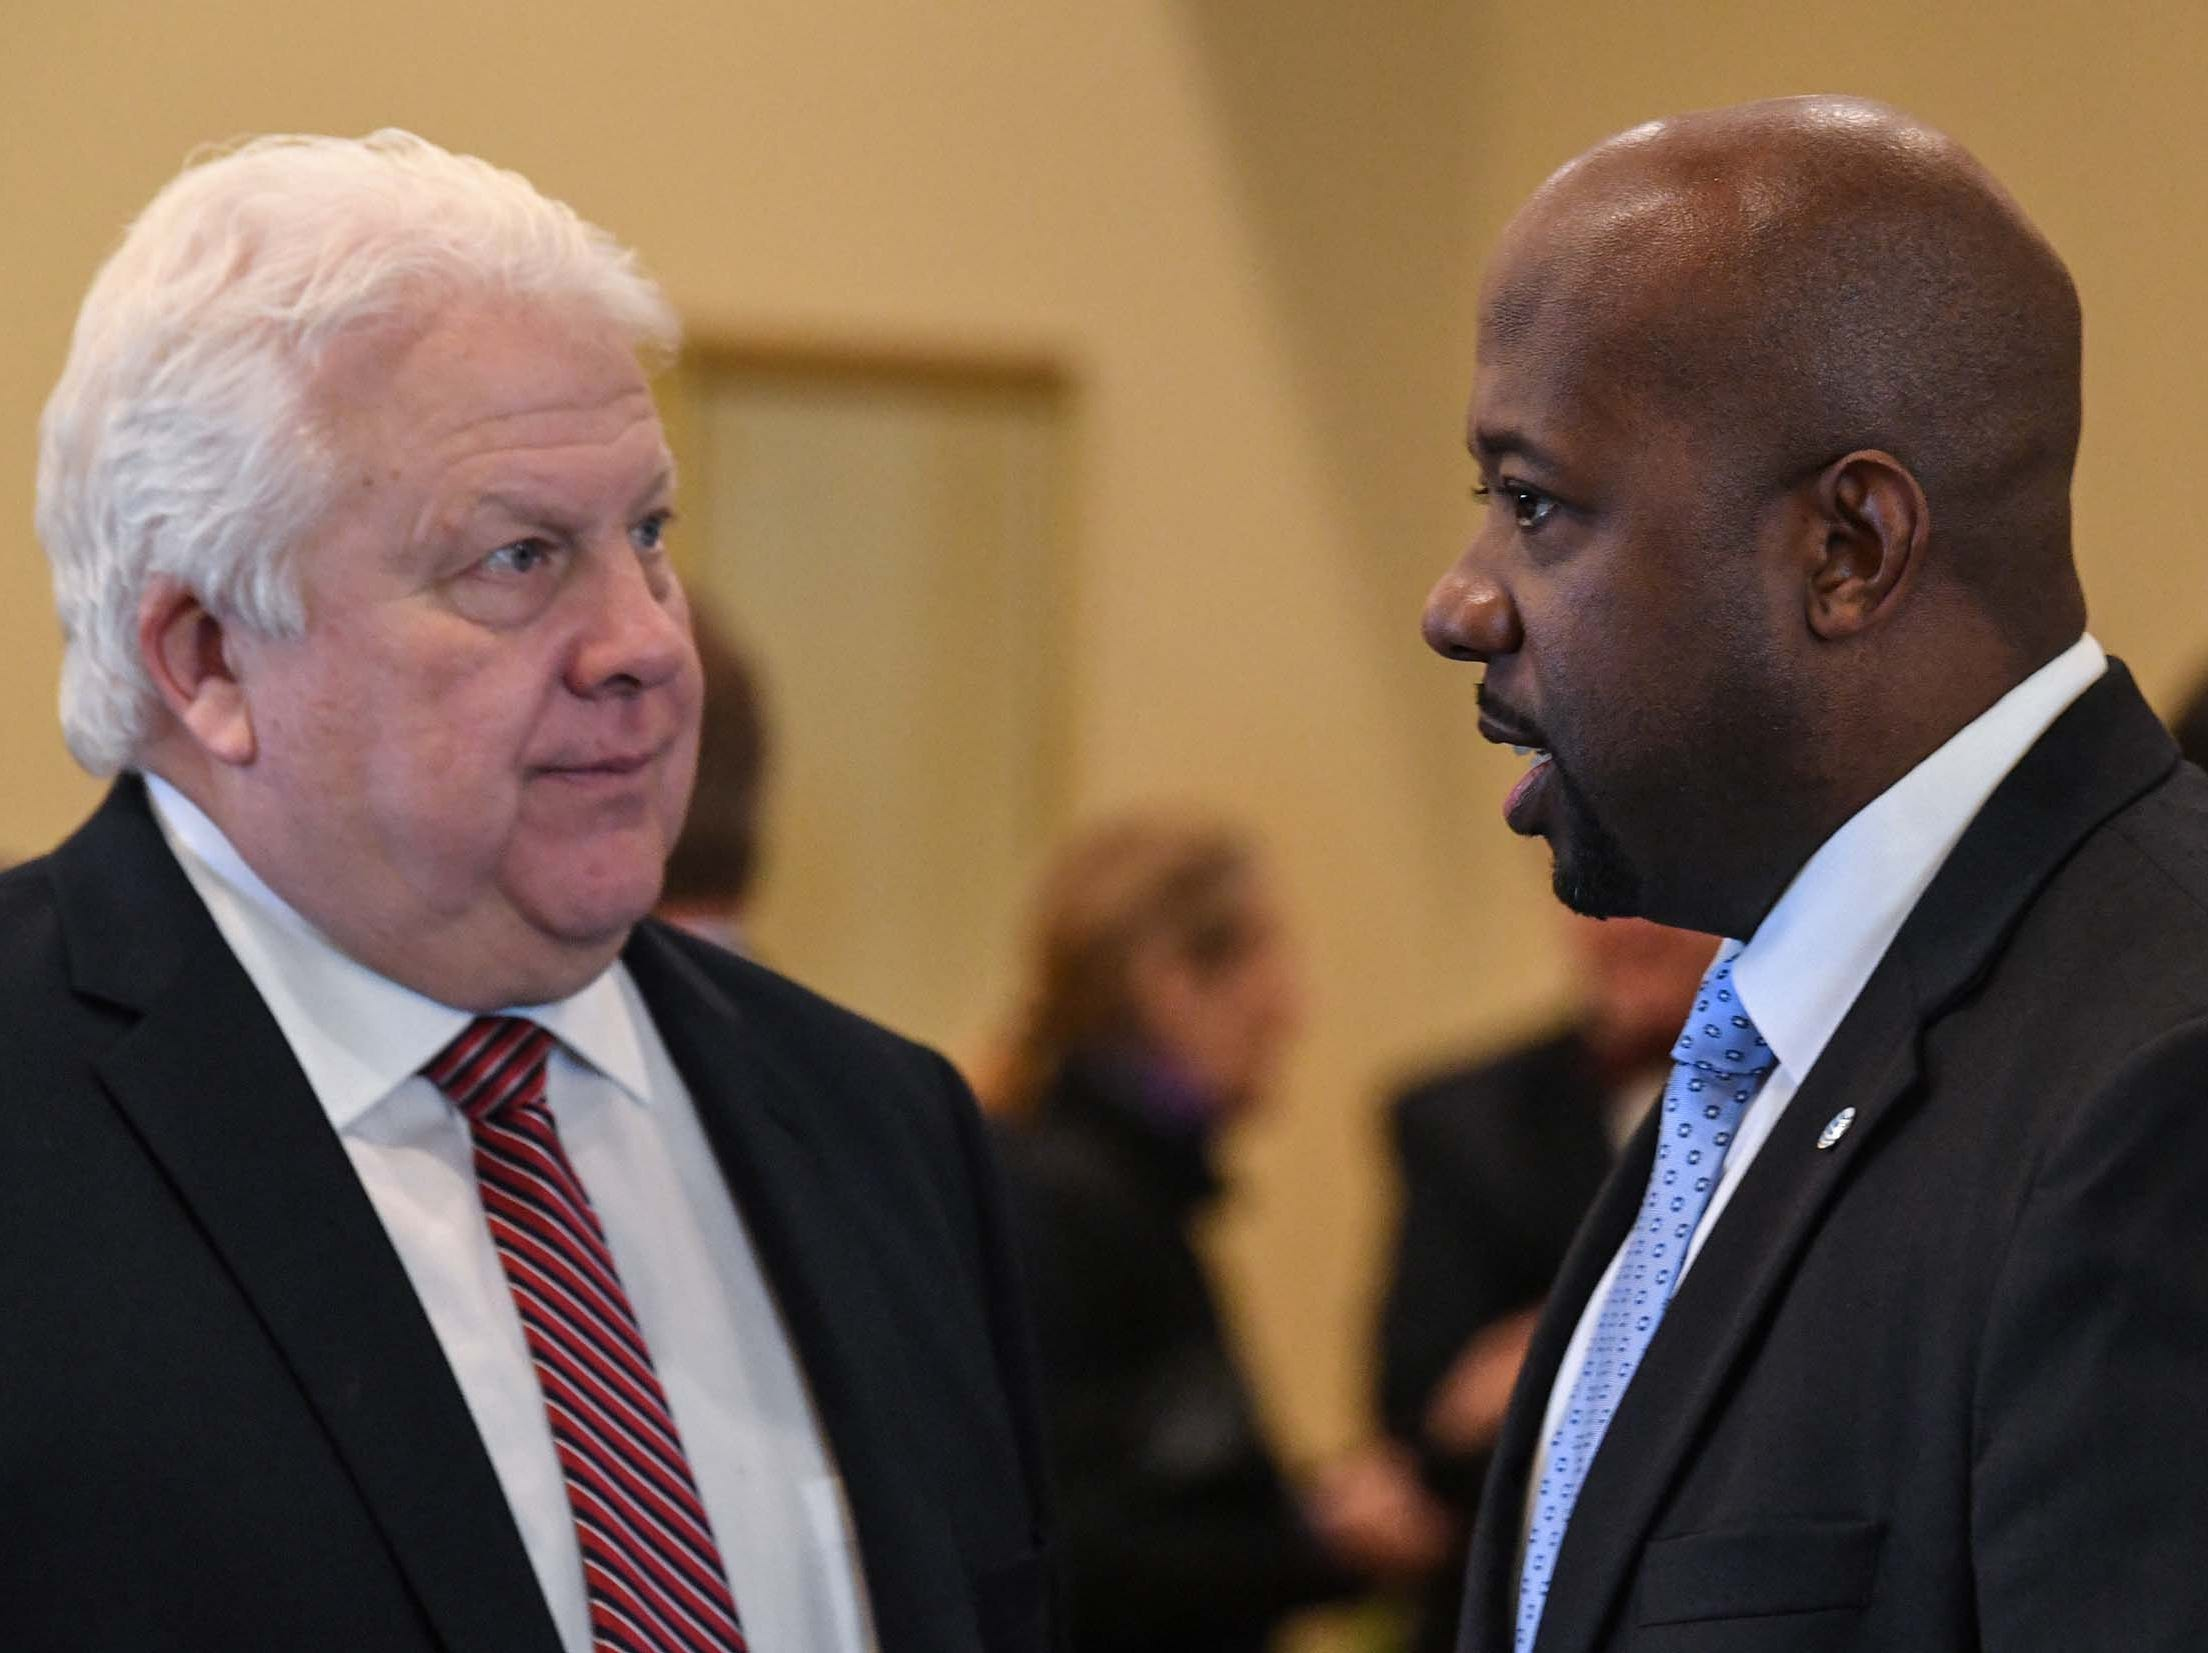 Douglas Wright, left, President/CEO of SENIOR Solutions SC in Anderson, listens to Terrance Ford, middle, AT&T Director of Legislative Affairs, during the chamber lunch at Tucker's in Anderson Thursday, December 13, 2018. Ford presented State Rep. Brian White the 2017-2018 Business Champion Award.